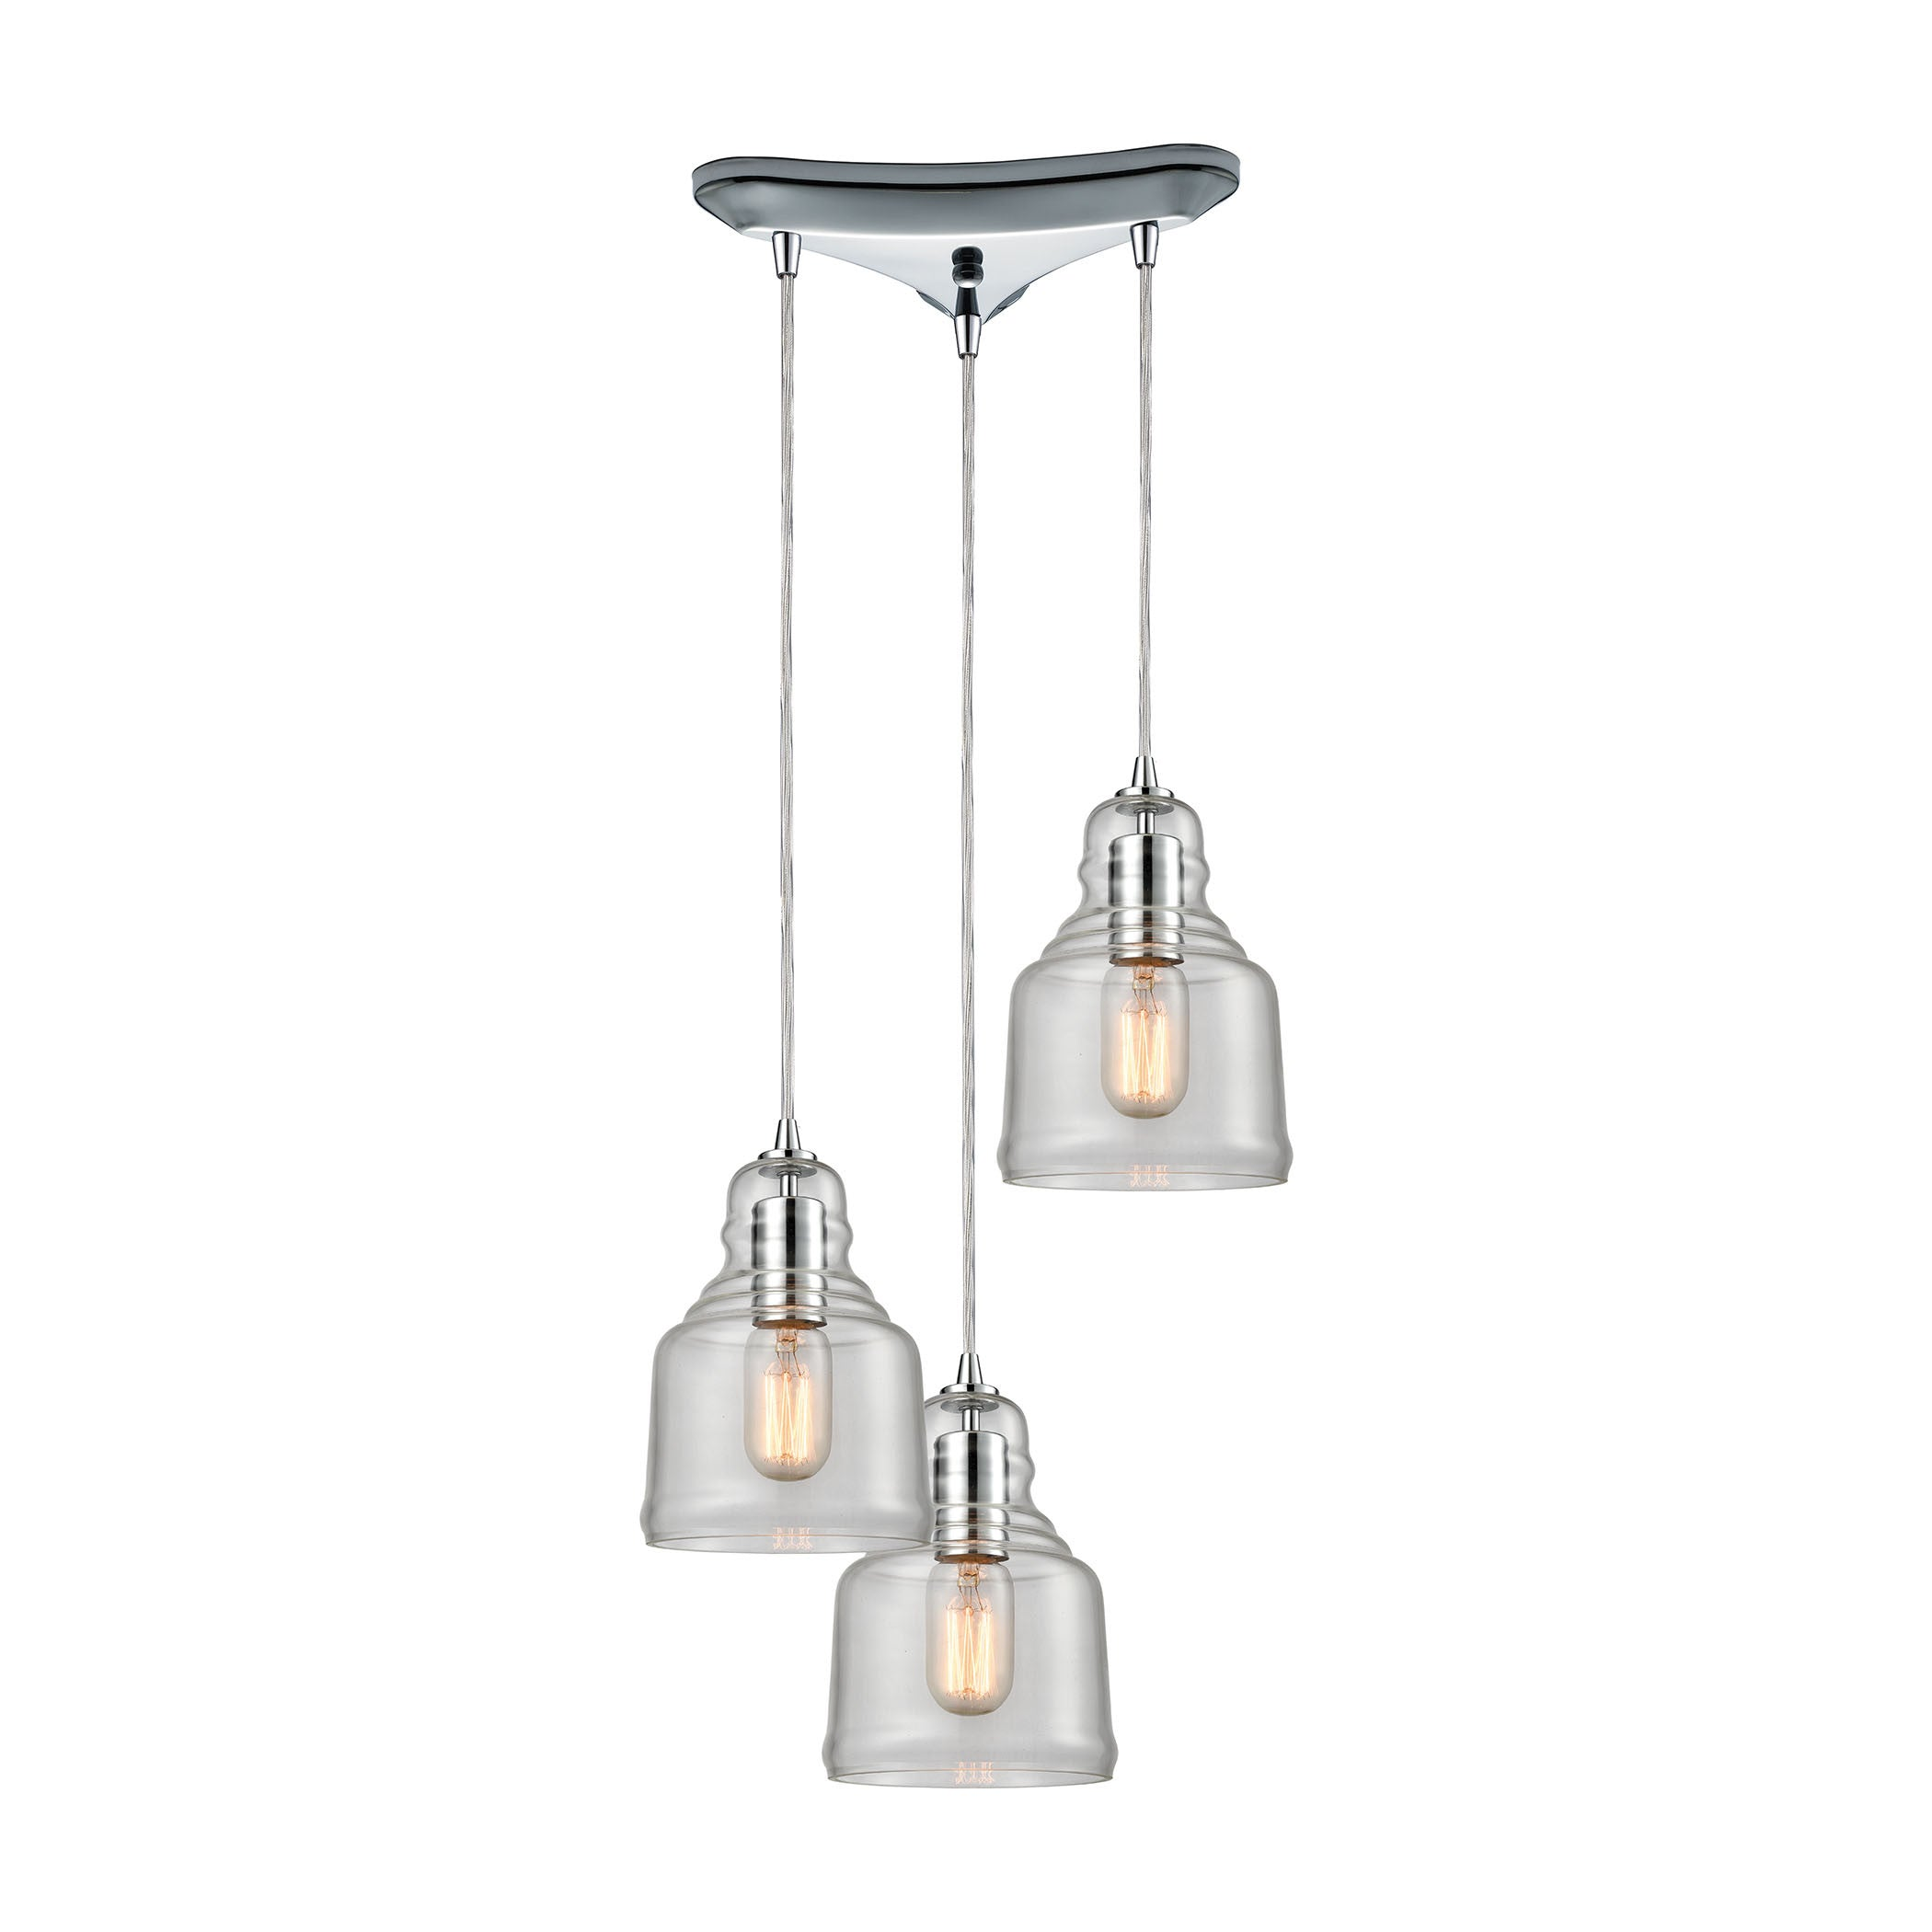 Menlow Park Multi-Light Pendant in Polished Chrome, by ELK Lighting, 60072/3